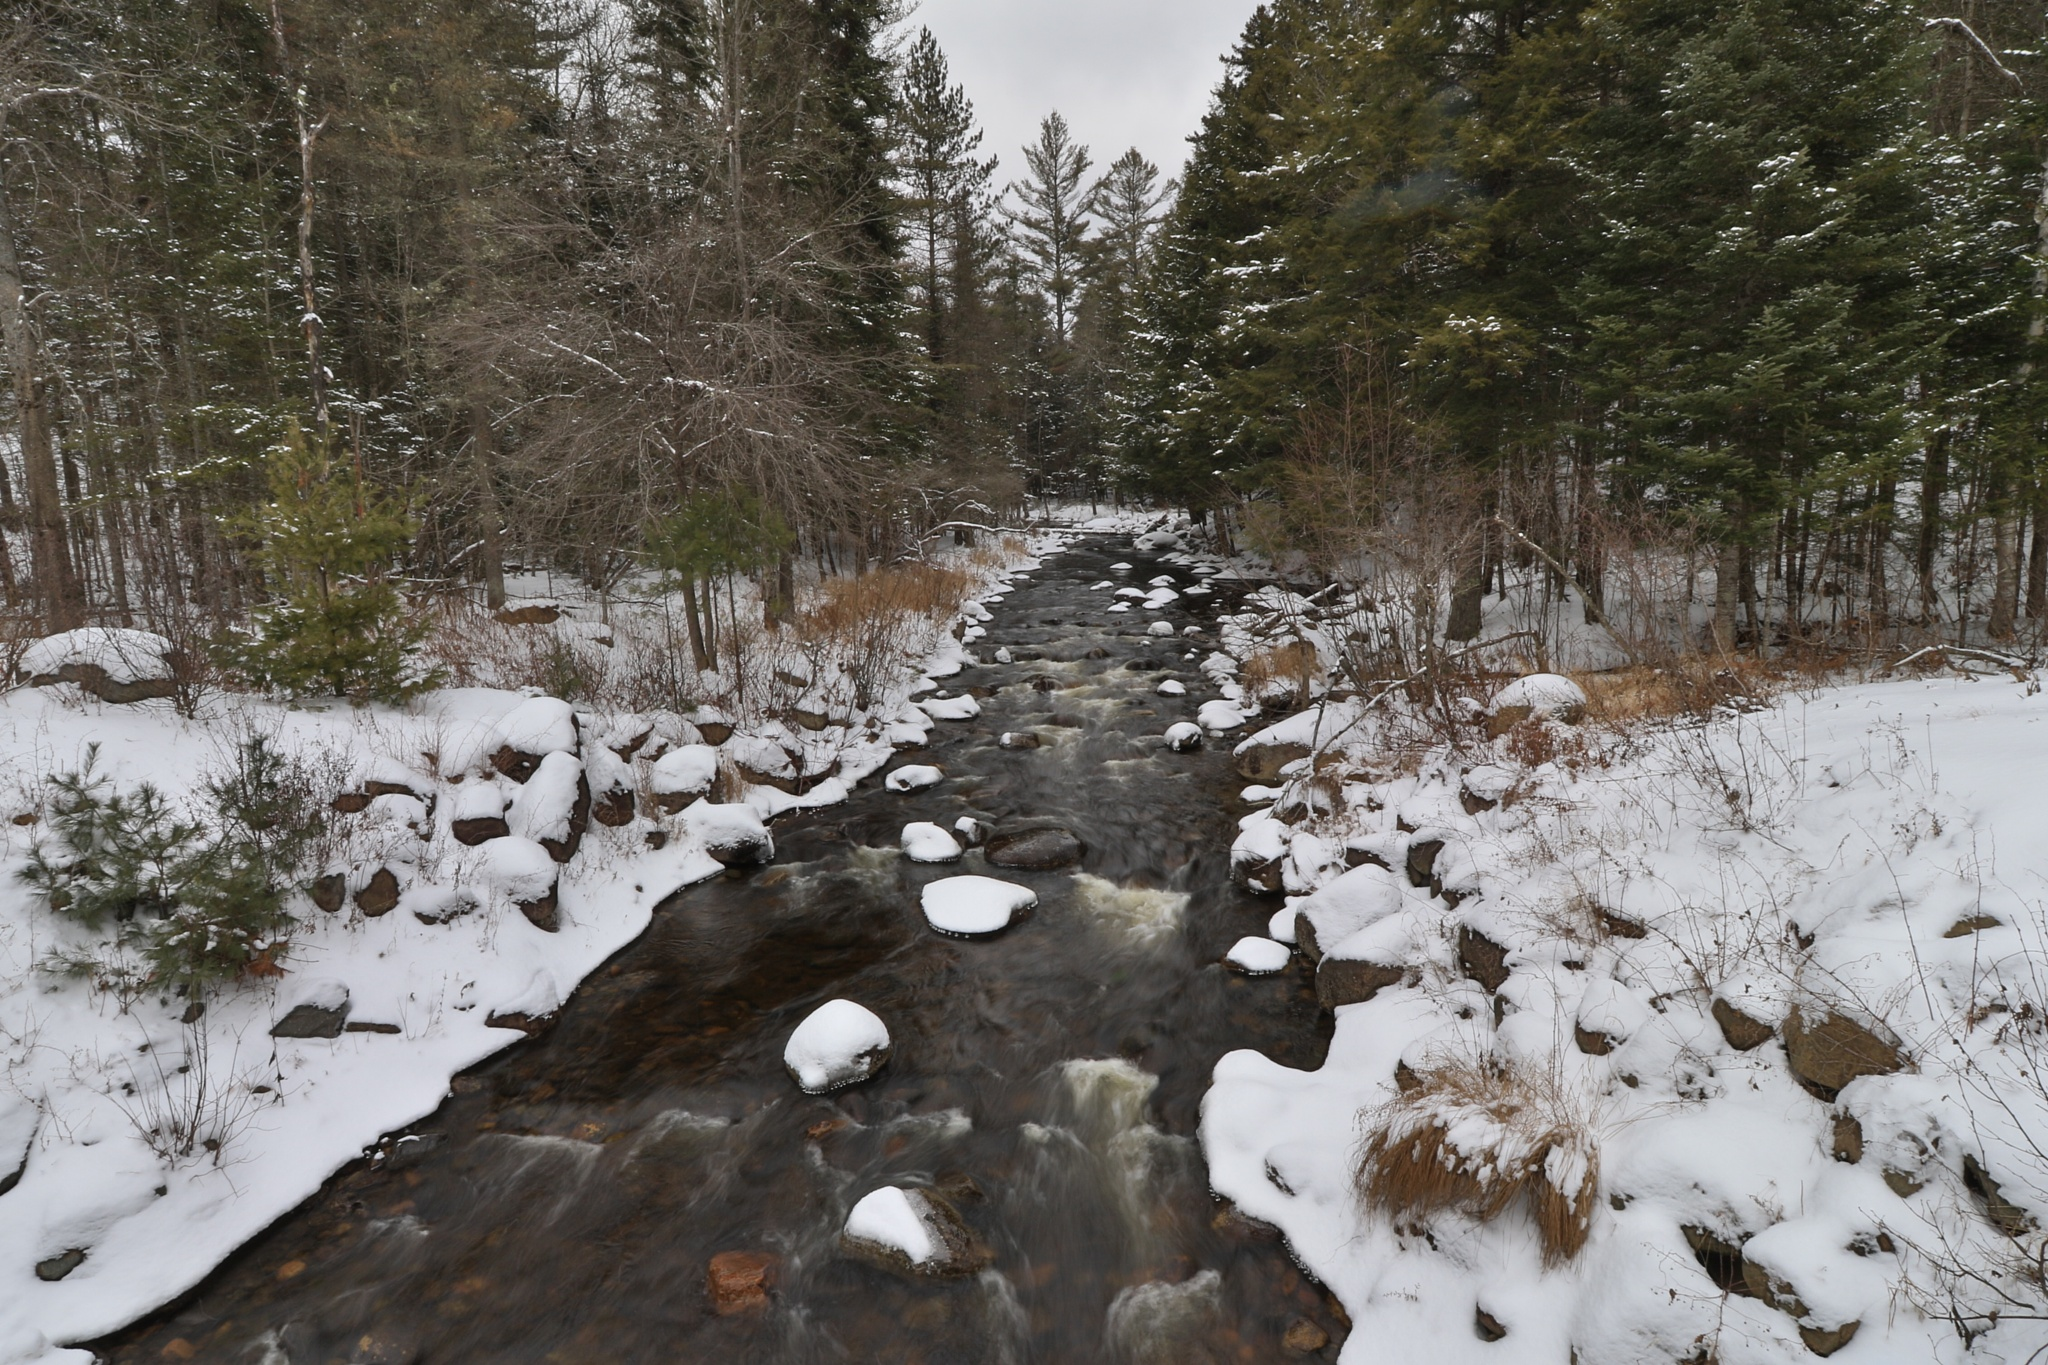 Mill Creek in Winter by CT Ware